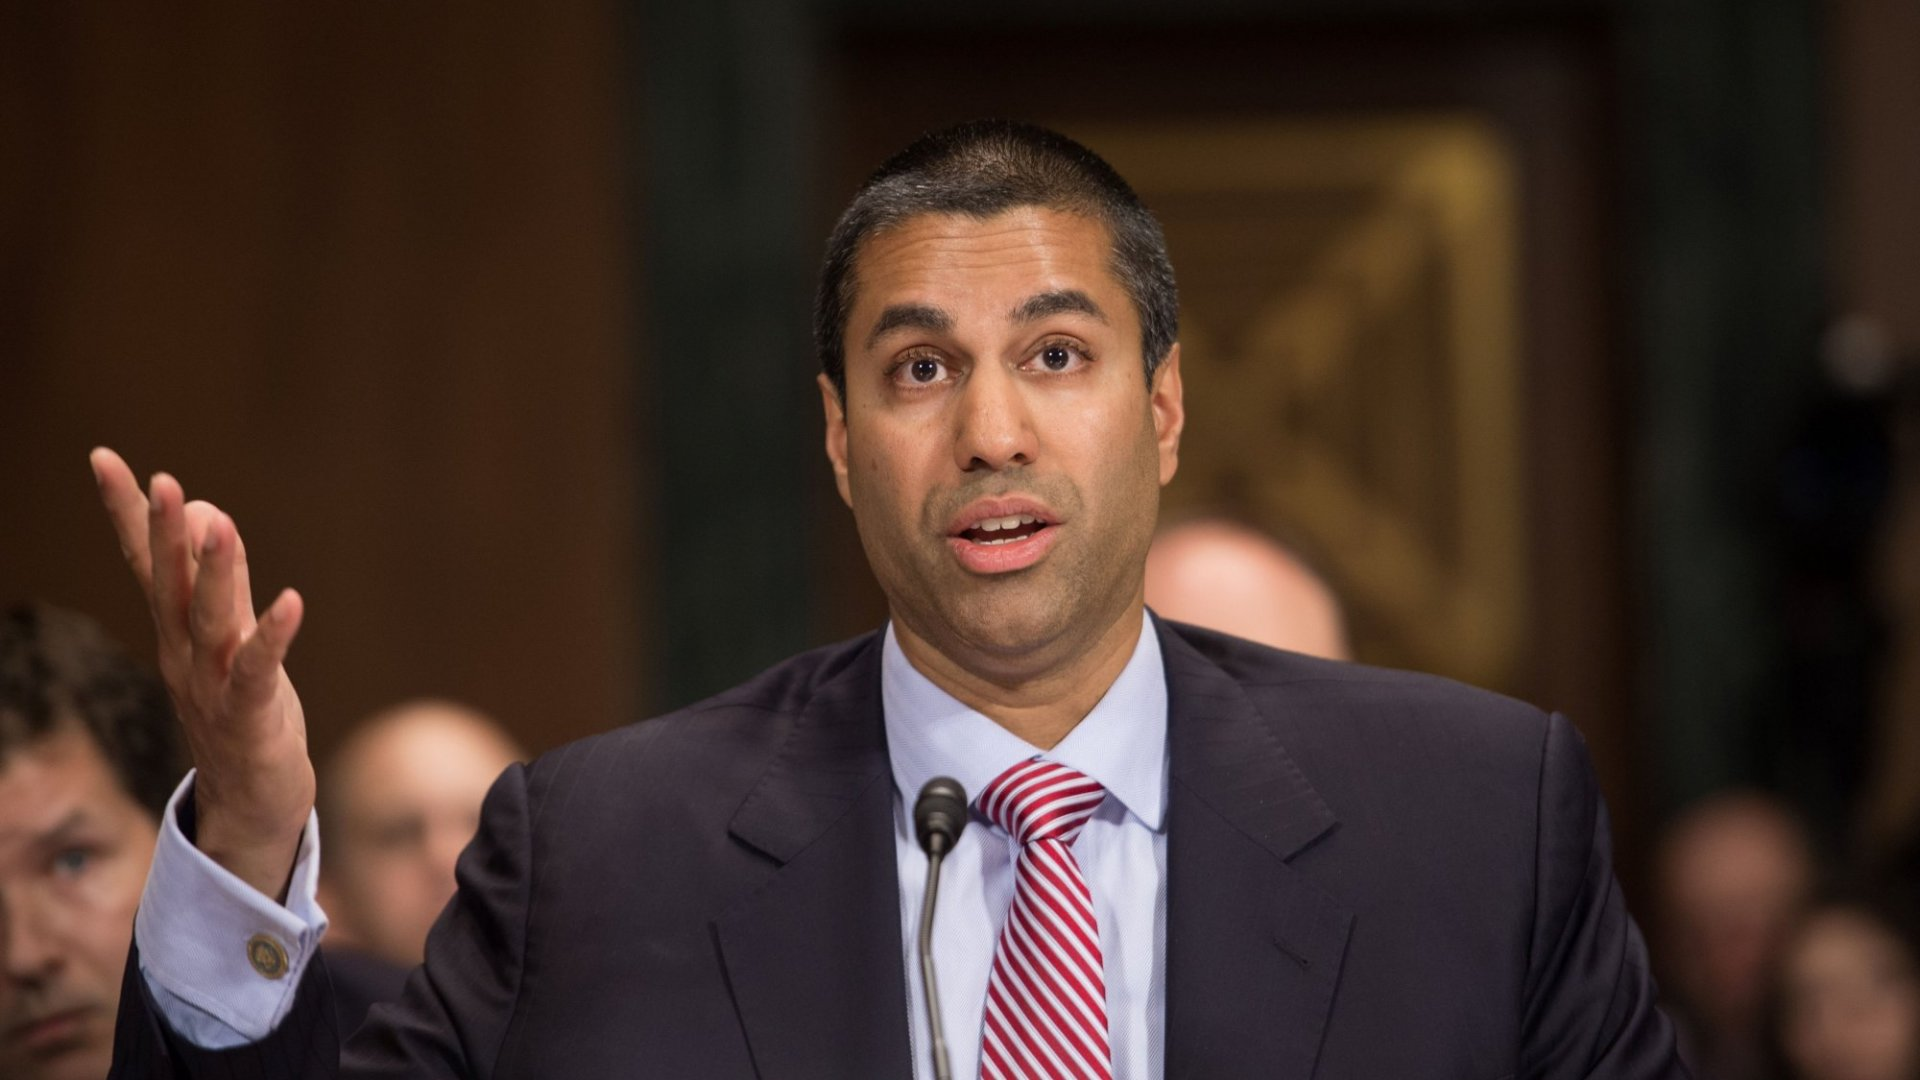 FCC Commissioner Ajit Pai testifies before the Senate Judiciary Committee's Privacy, Technology and the Law Subcommittee.